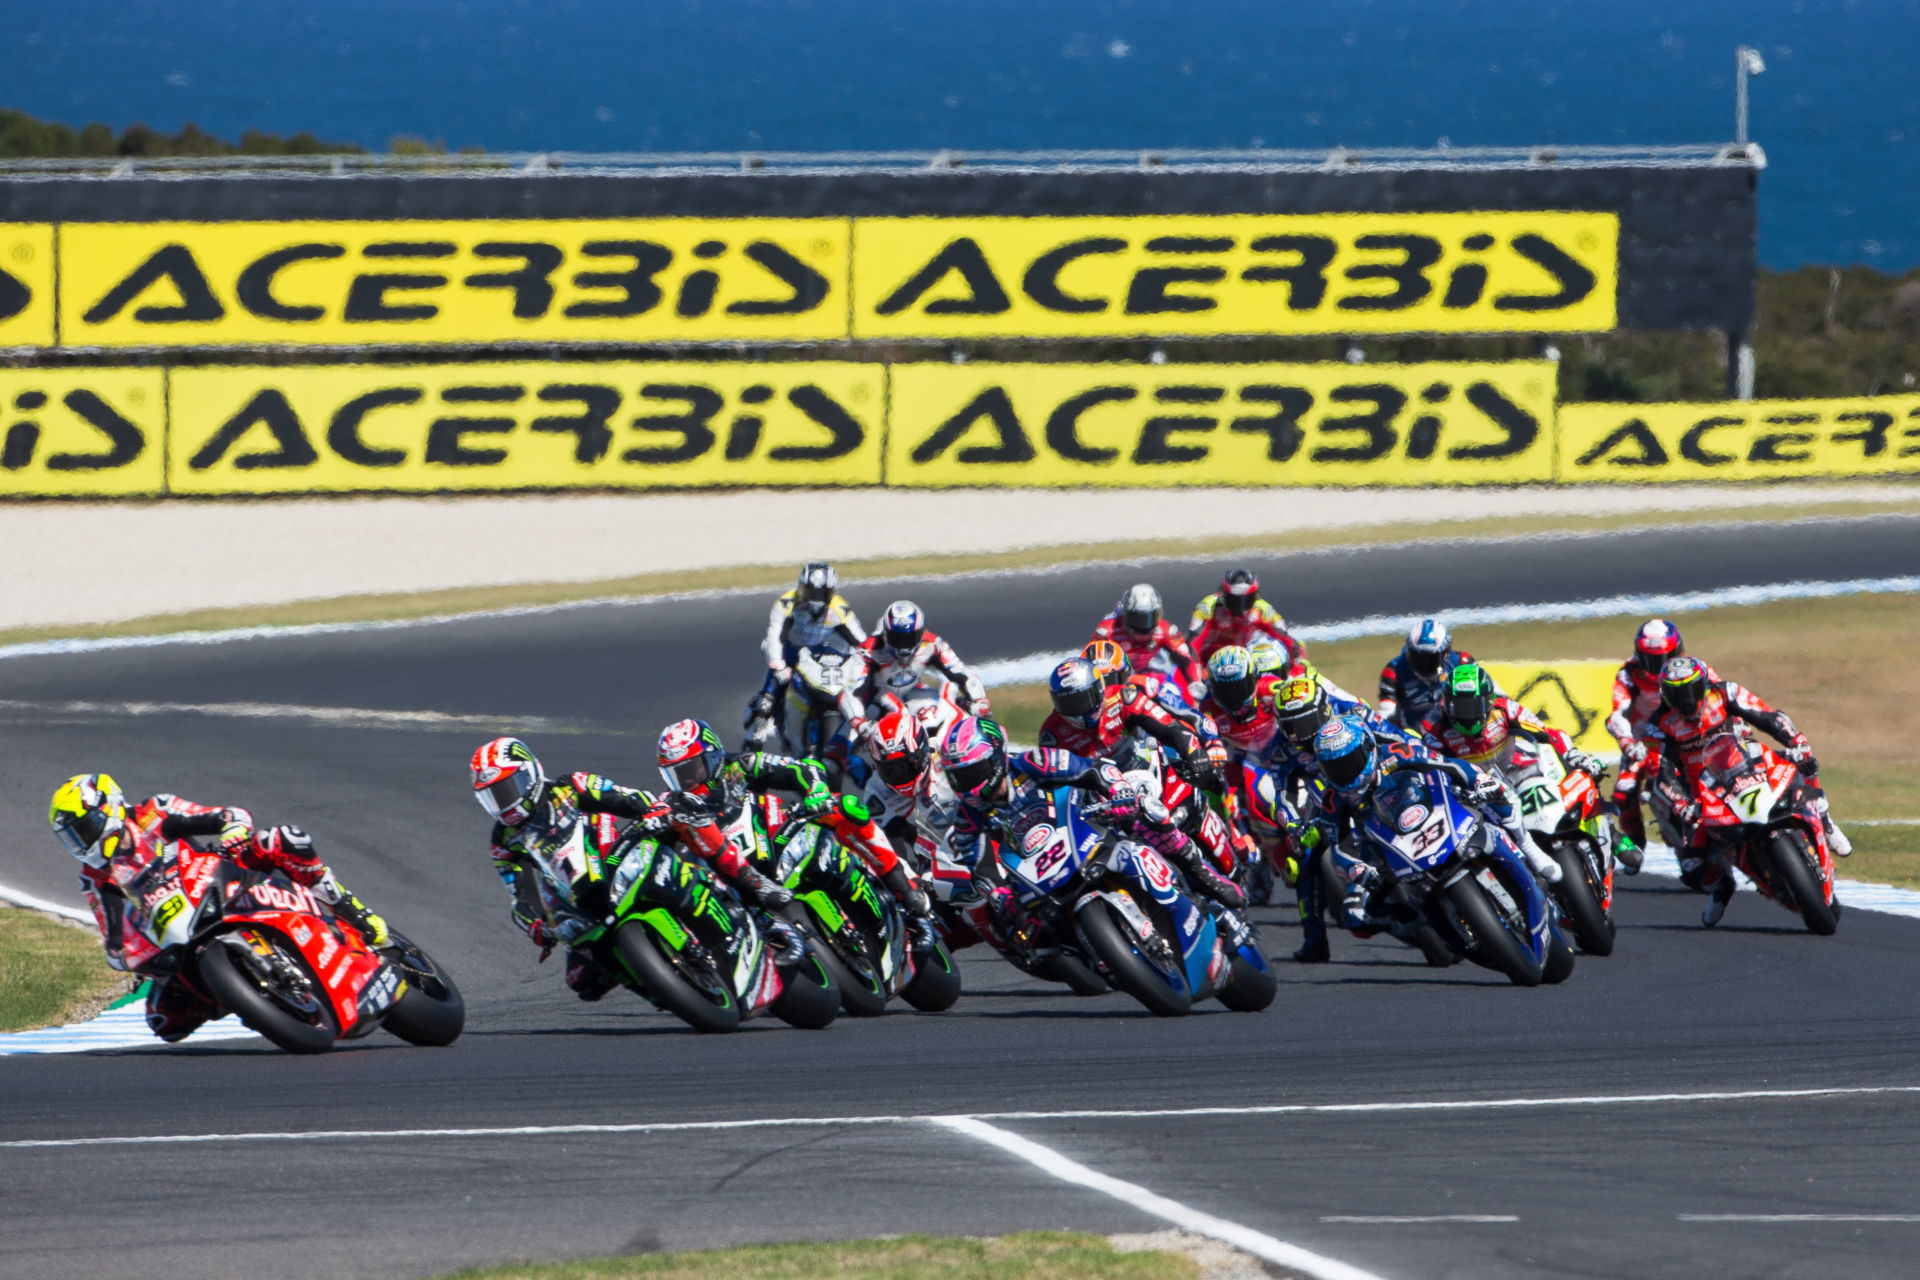 Action from the opening round of the 2019 FIM Superbike World Championship. Photo courtesy of Kawasaki.